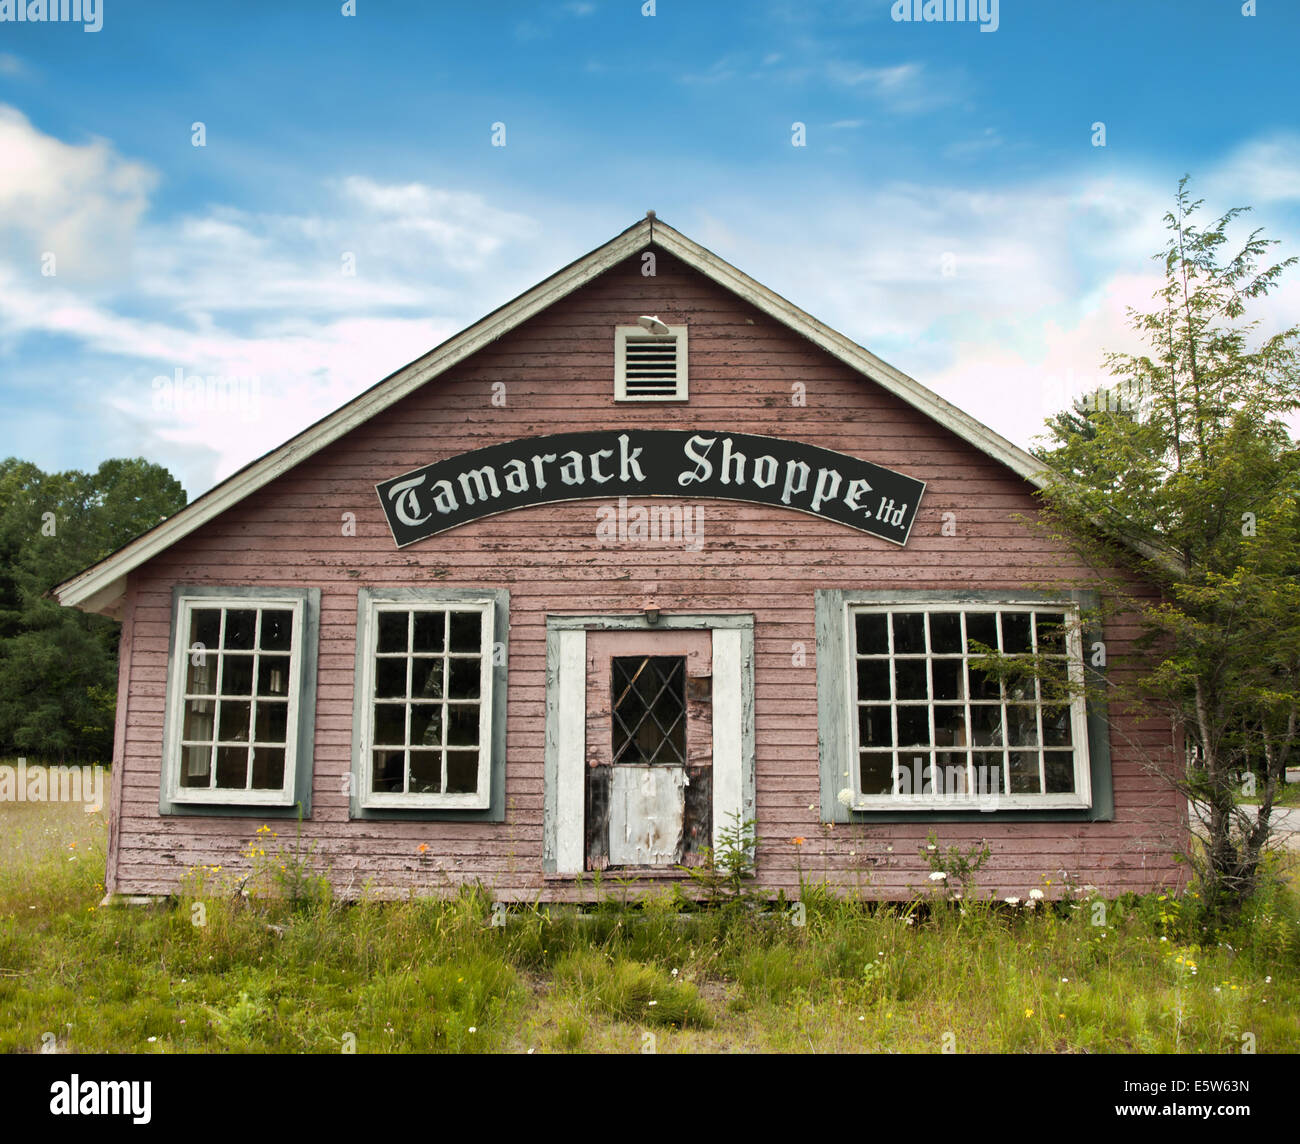 The old Tamarack Theater, later the Tamerack Shoppe, now vacant, near Lake Pleasant in the Adirondack State Park - Stock Image